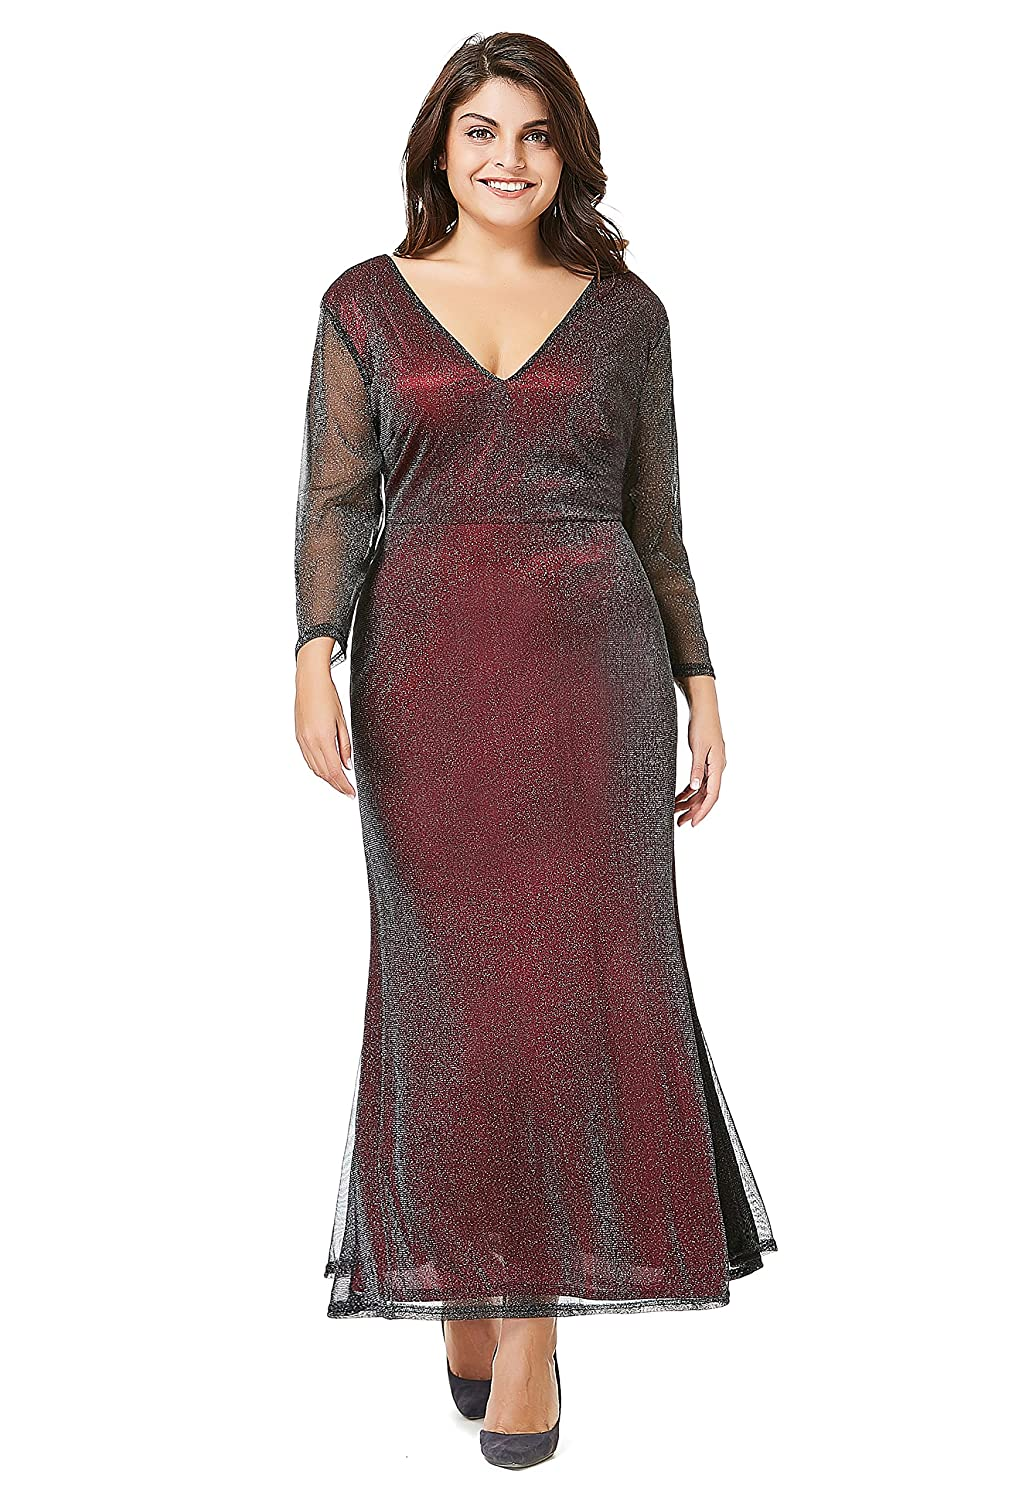 d501f8489 myfeel Plus Size Evening Ankle Length Dress with Long Sleeves Shining  Cocktail Dress at Amazon Women s Clothing store